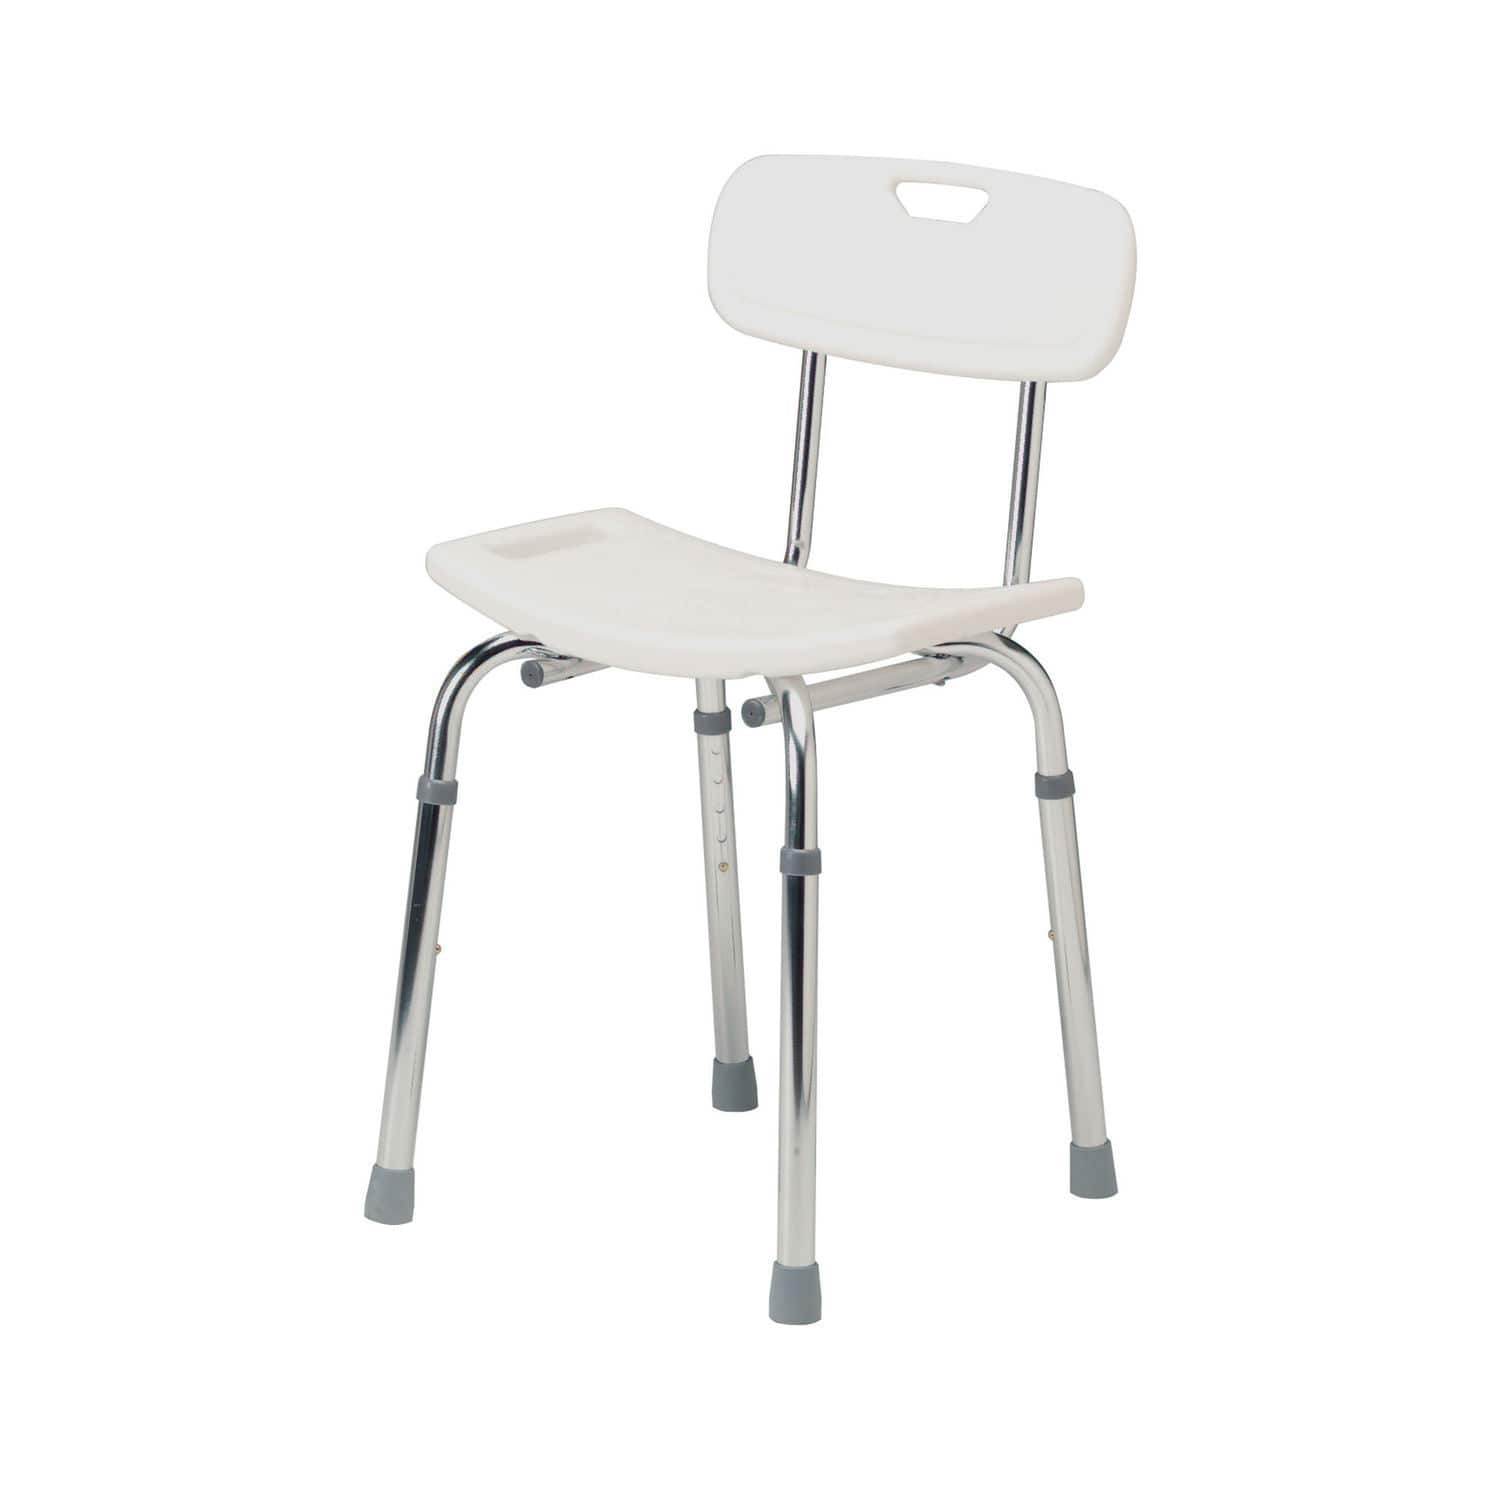 Shower chair / height-adjustable - 4207A - Roma Medical Aids